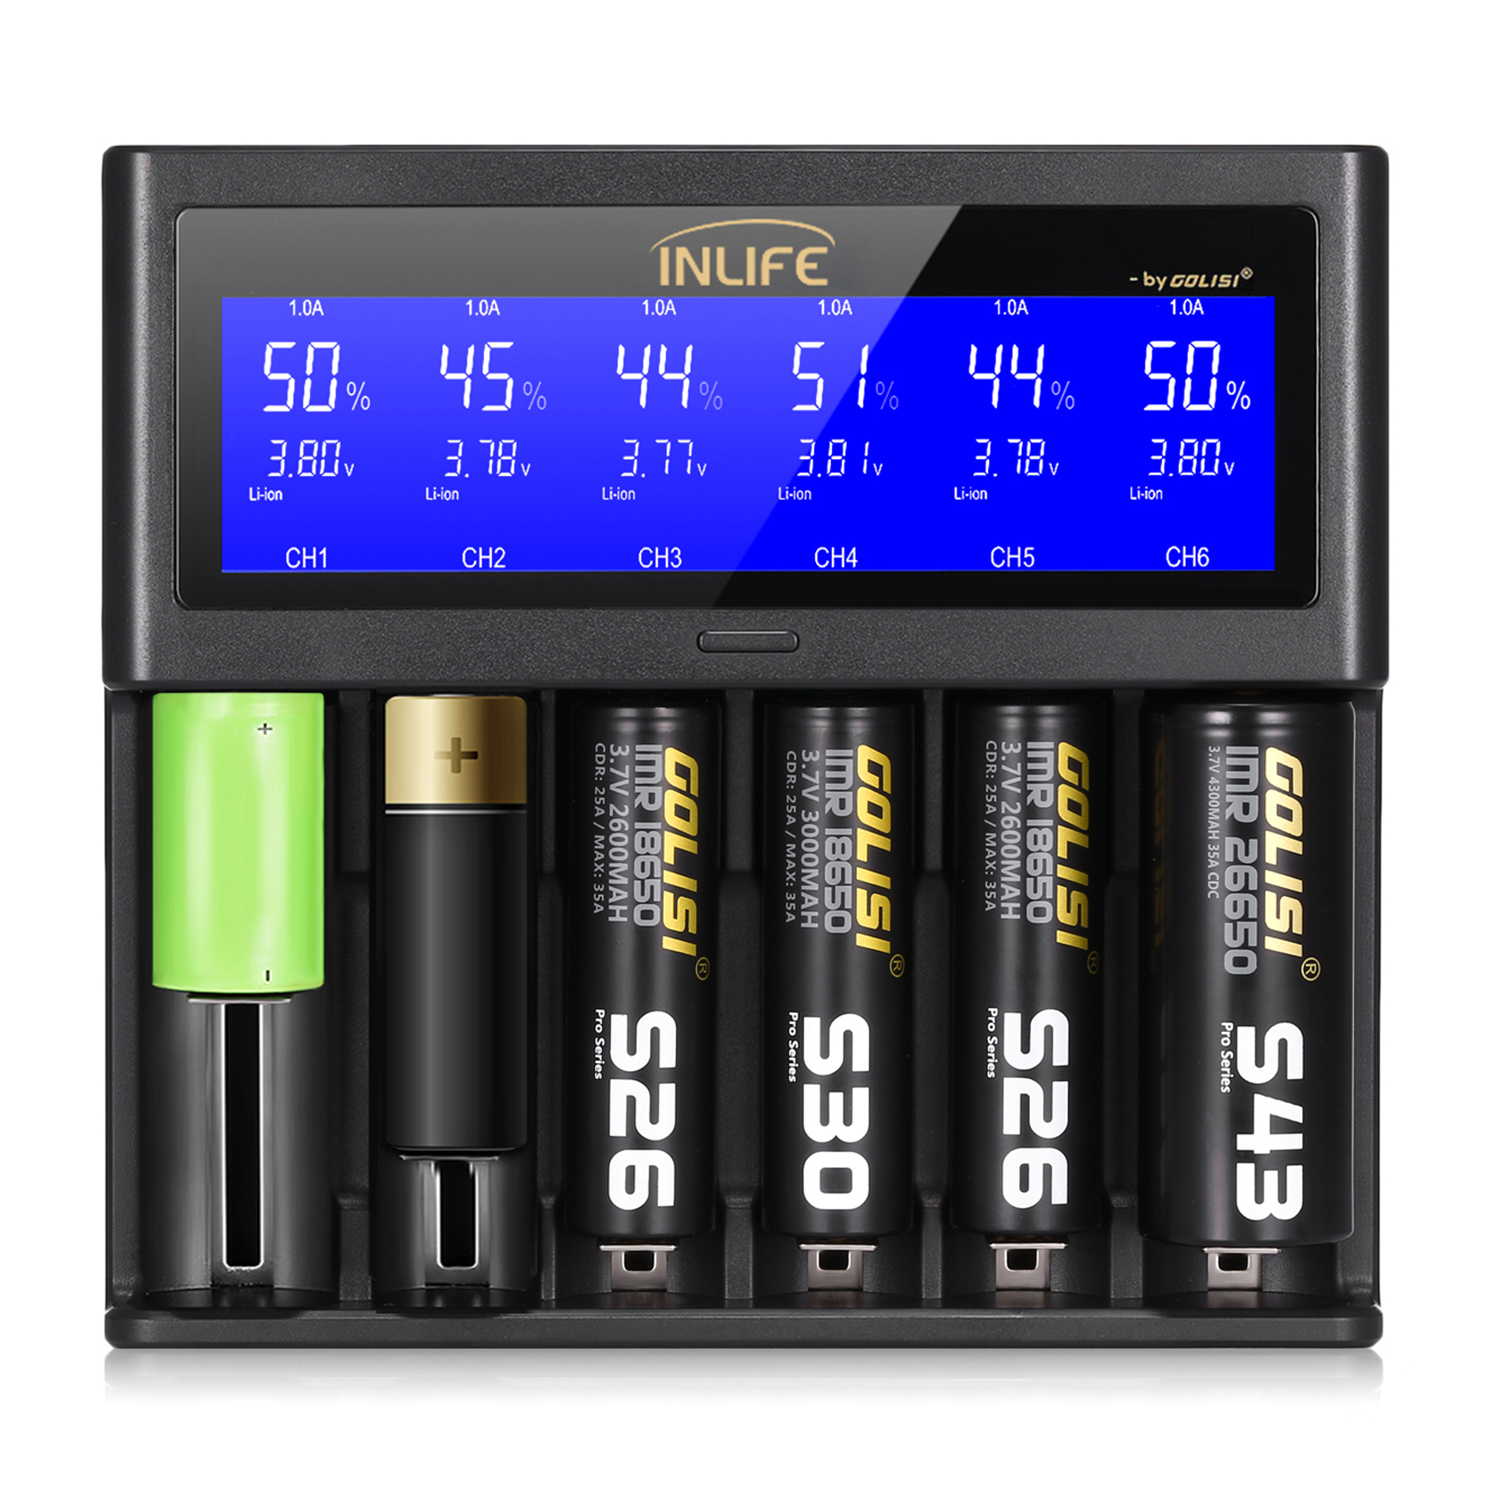 Golisi Inlife S6 2A 1A 0.5A Smart Battery Charger LCD Screen Rechargeable Lithium-ion / NiMH / NiCd